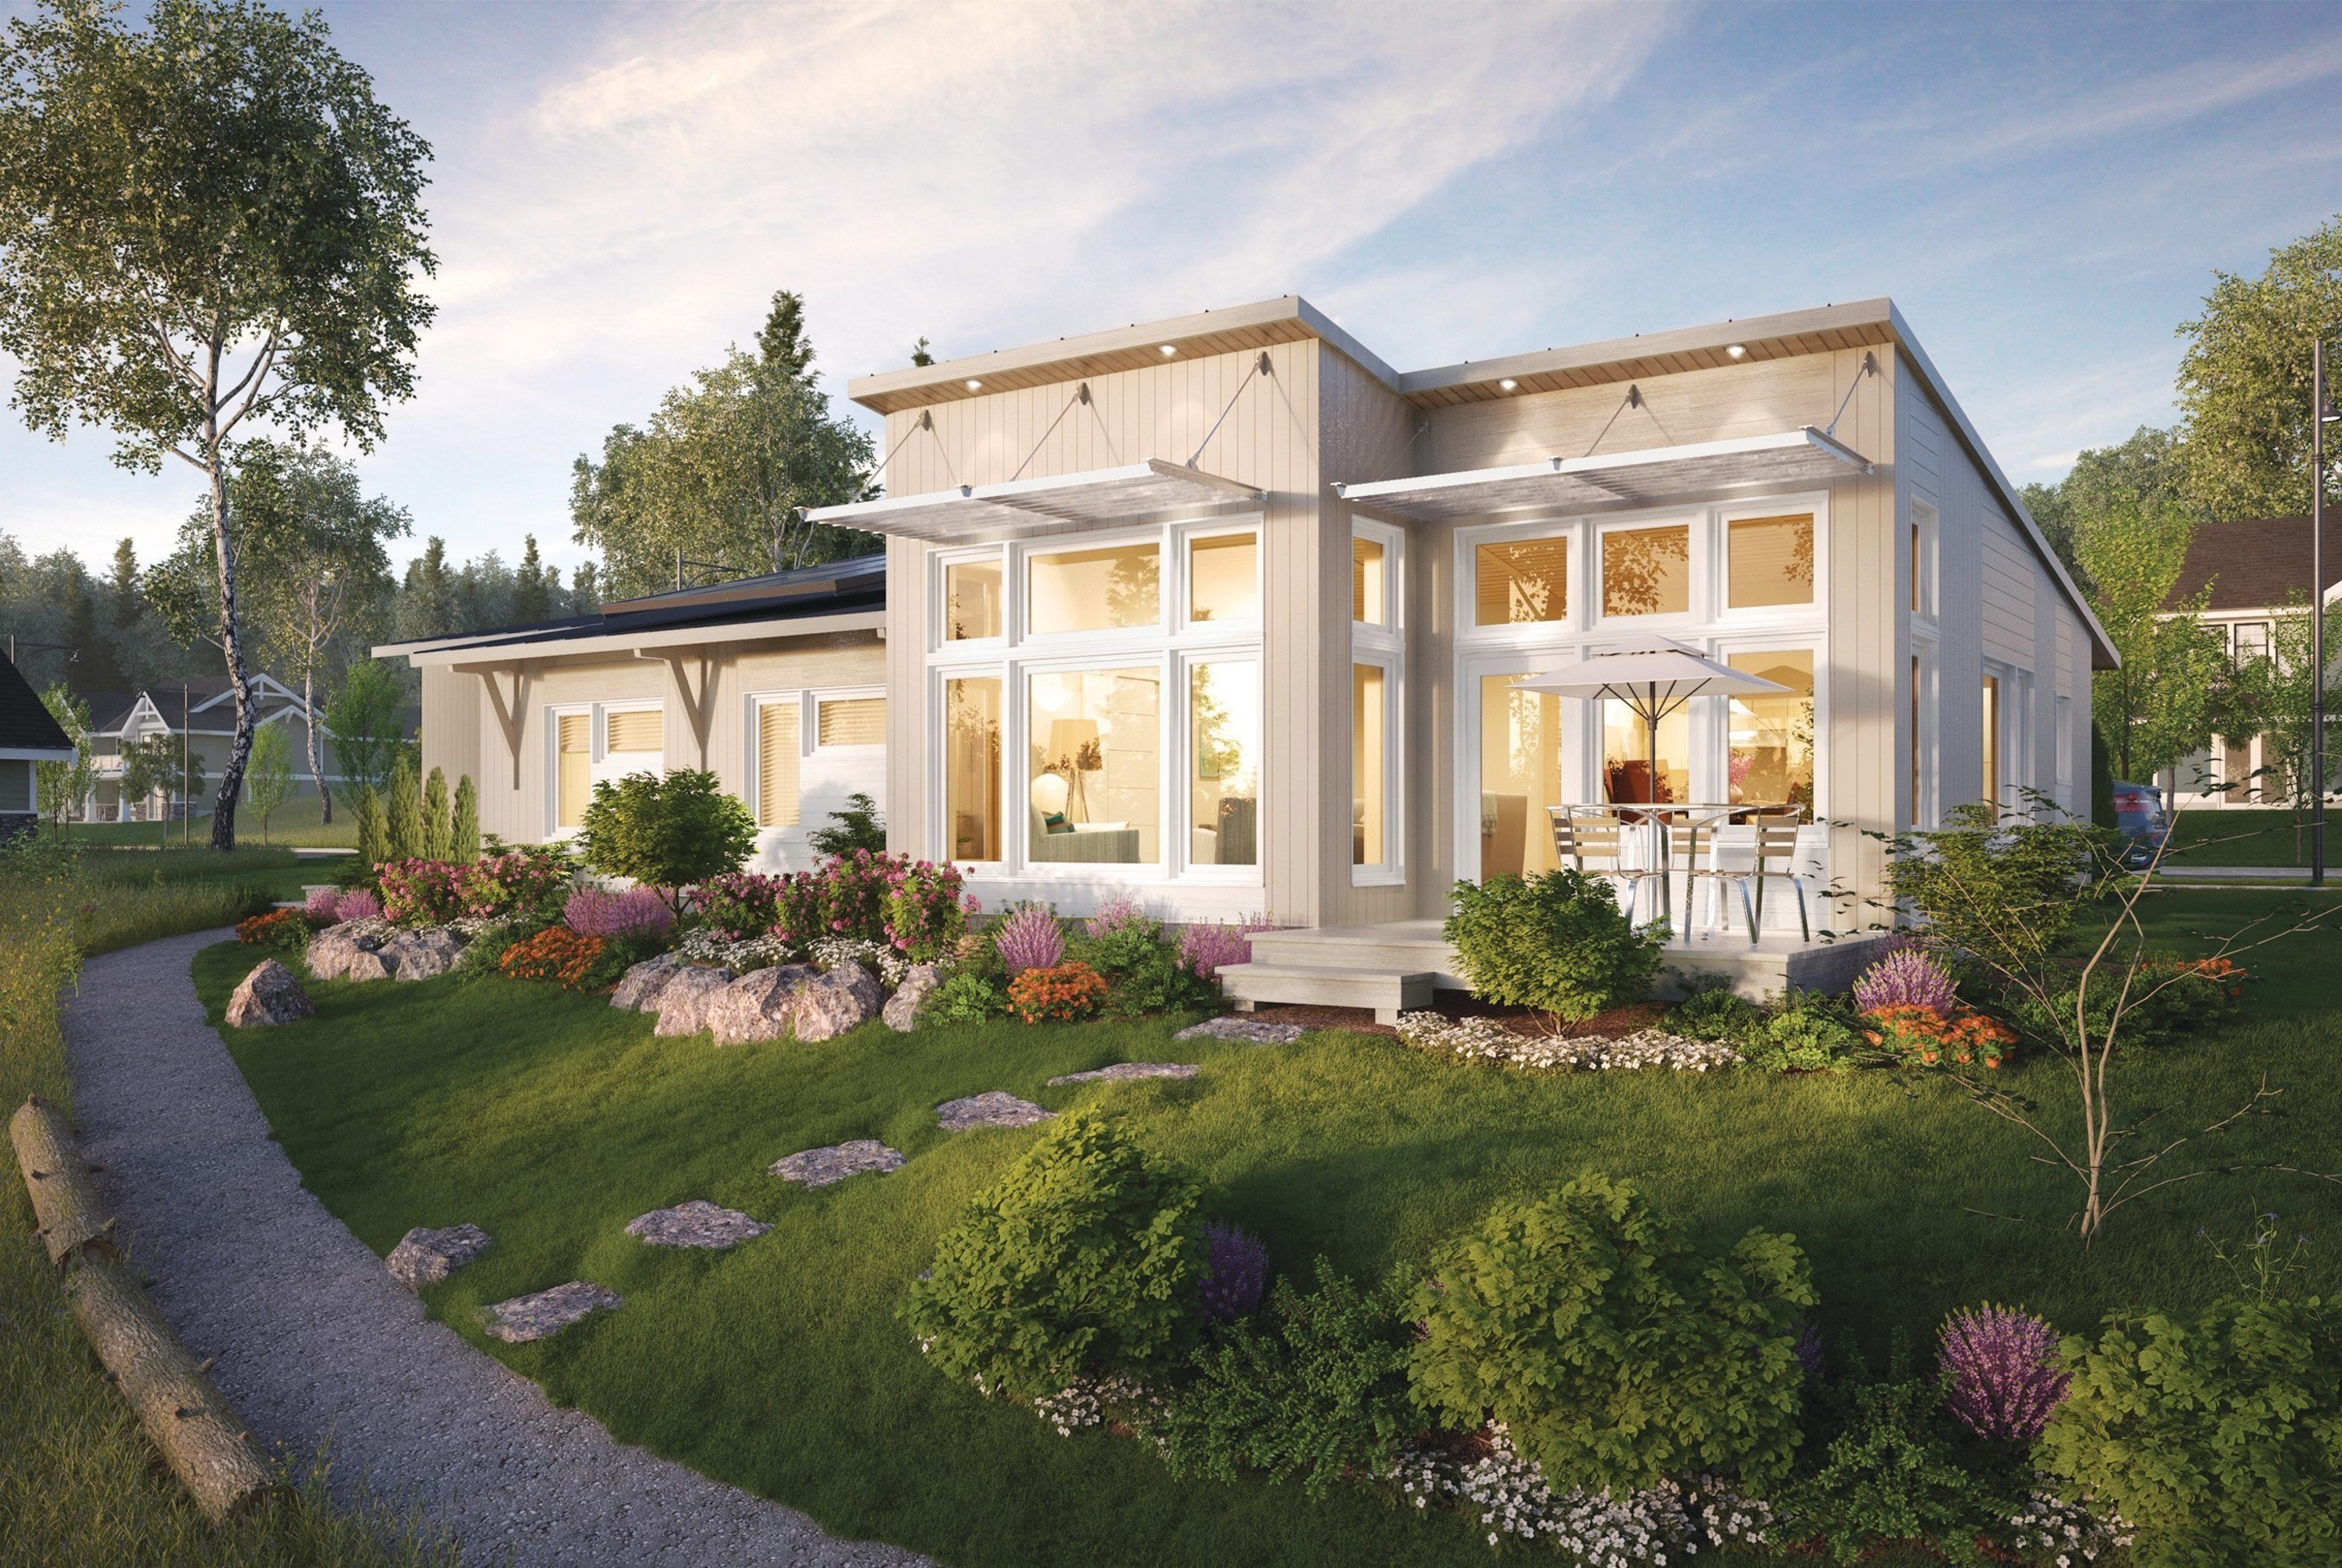 Zero-net energy Greenbuild Unity Home featuring fully-integrated SunPower home solar solution